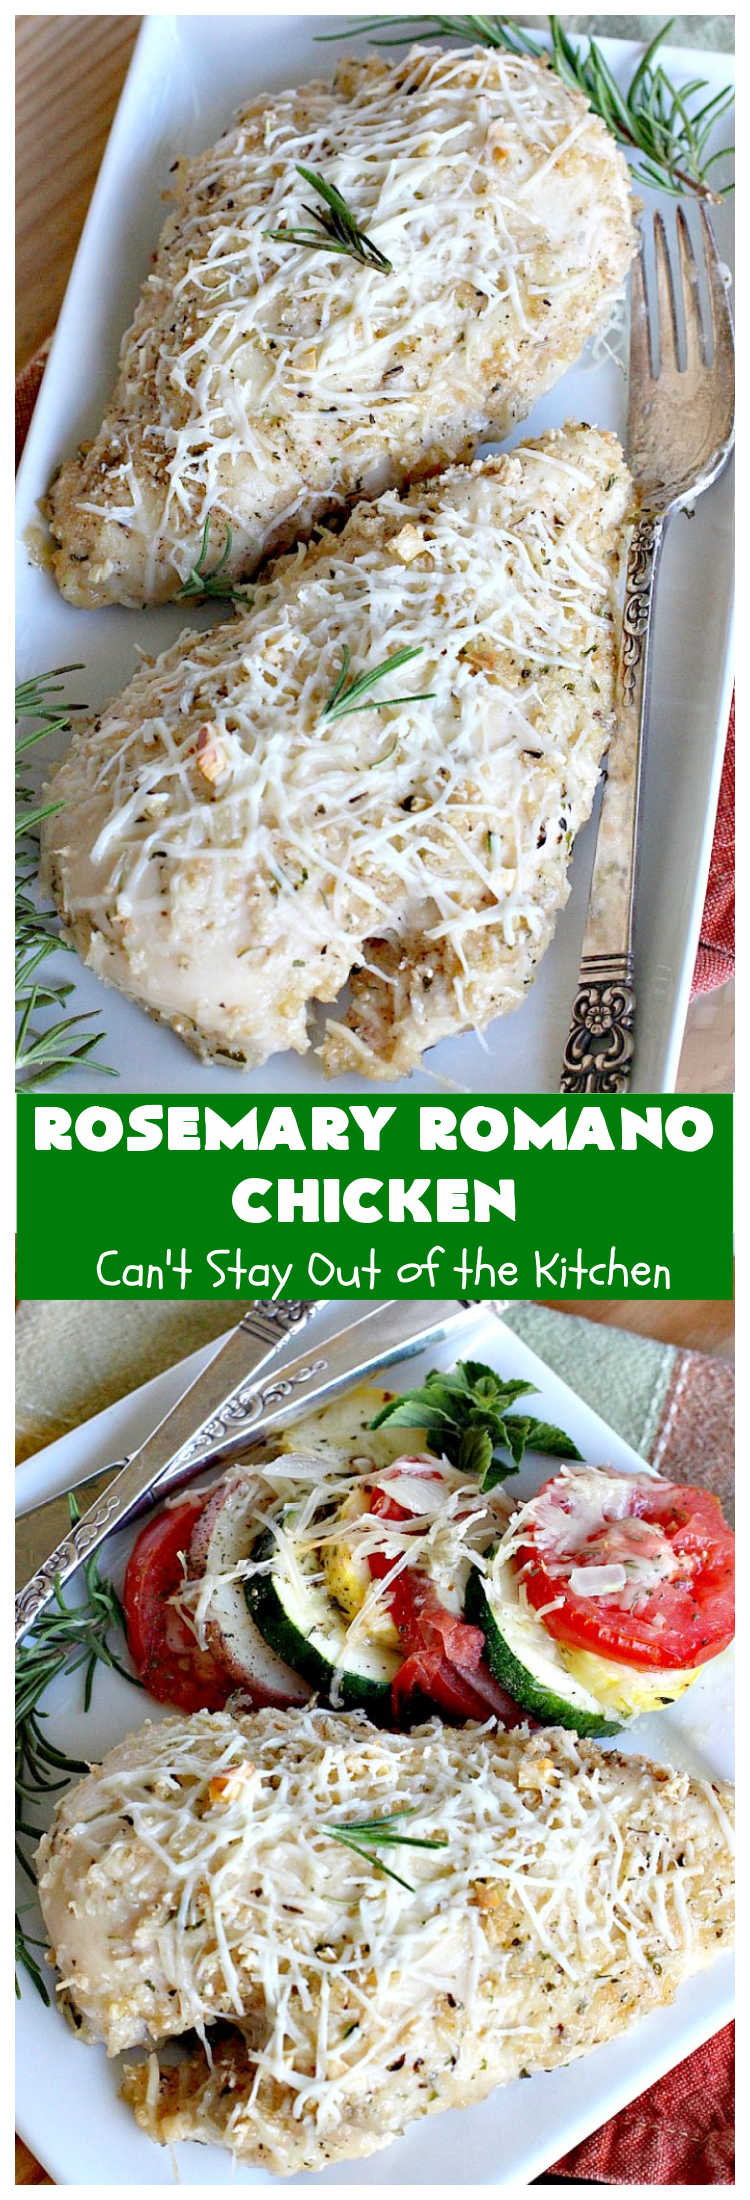 Rosemary Romano Chicken | Can't Stay Out of the Kitchen | this fabulous #chicken entree can be oven ready in 5 minutes! Great #casserole to make when you're short on time for weeknight dinners or company. #RomanoCheese #GlutenFree #rosemary #RosemaryRomanoChicken